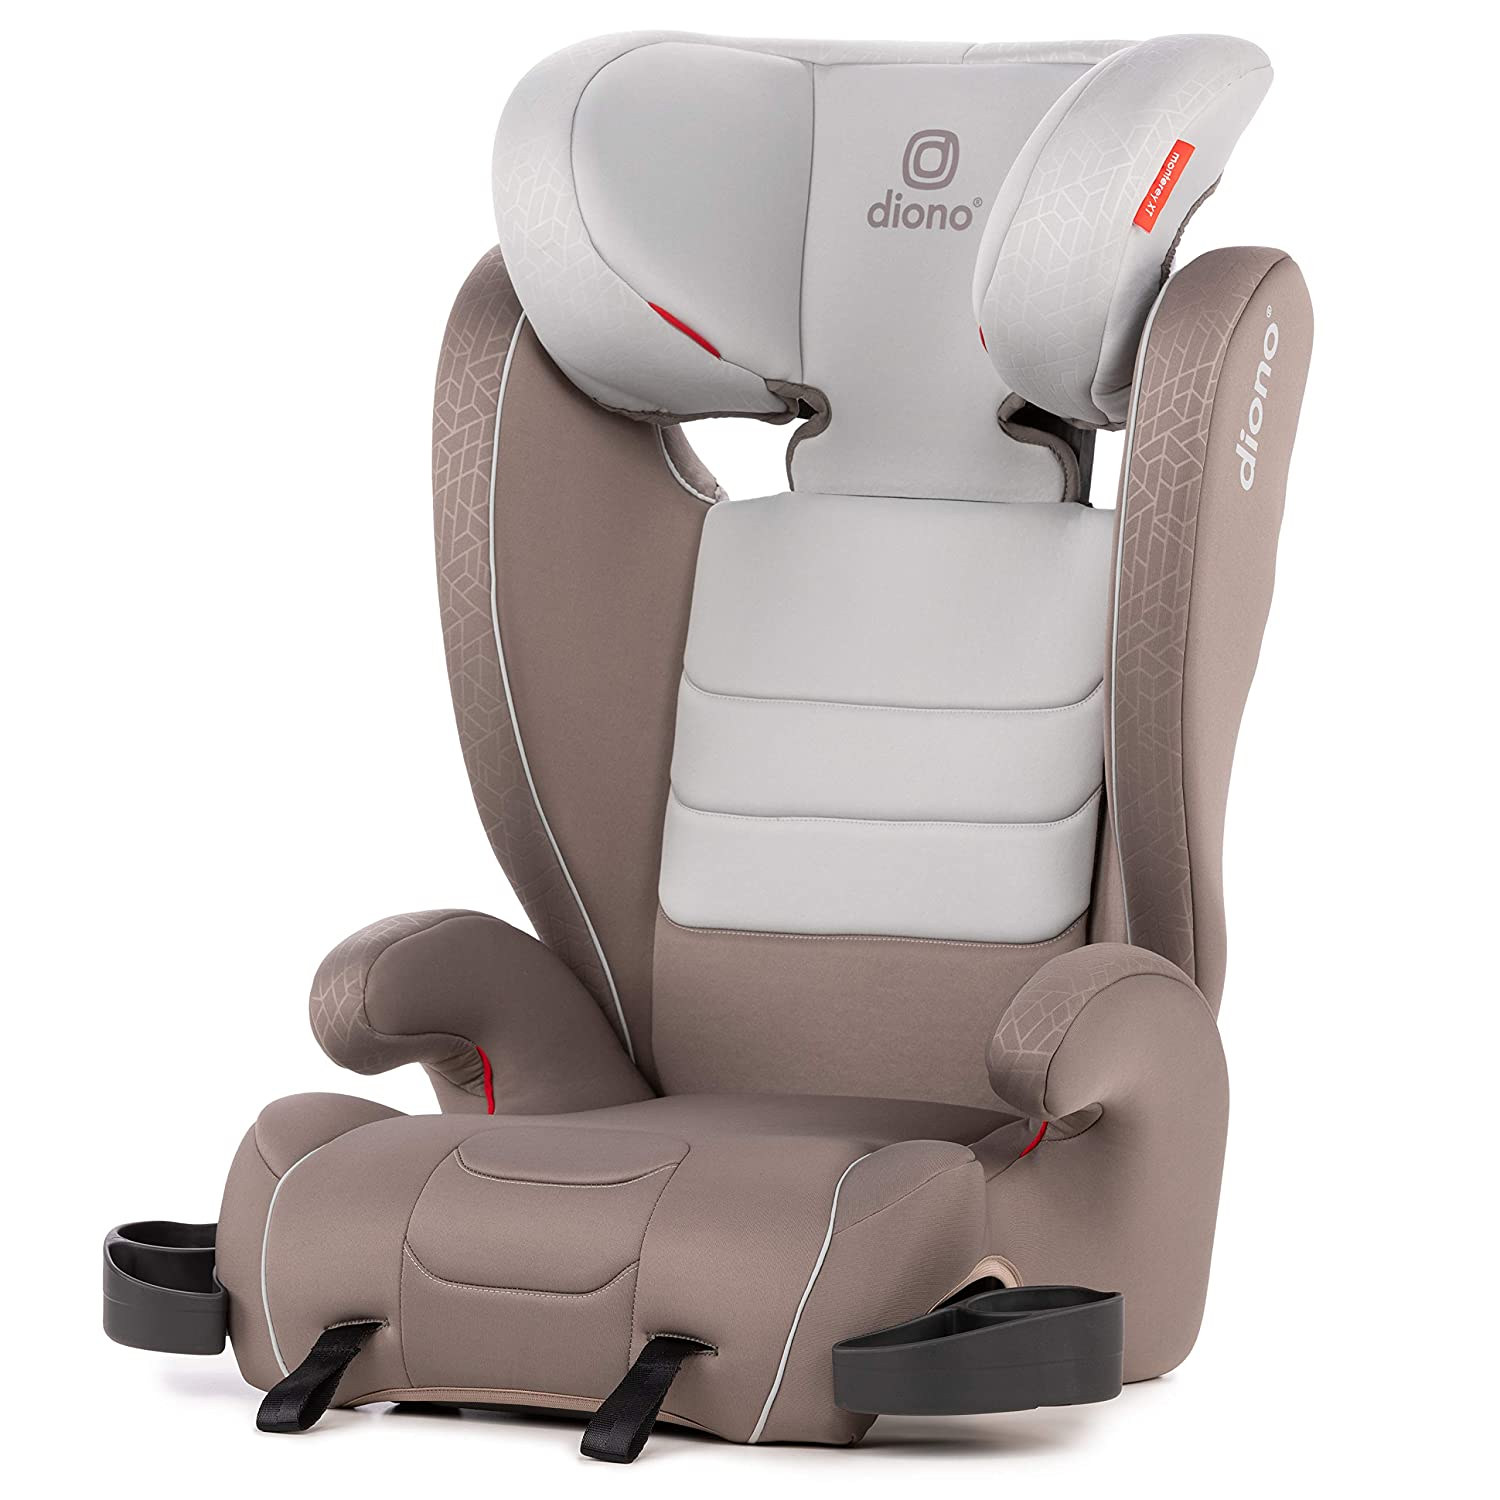 Diono Monterey XT Latch, 2-in-1 Expandable Booster Seat, Grey Oyster